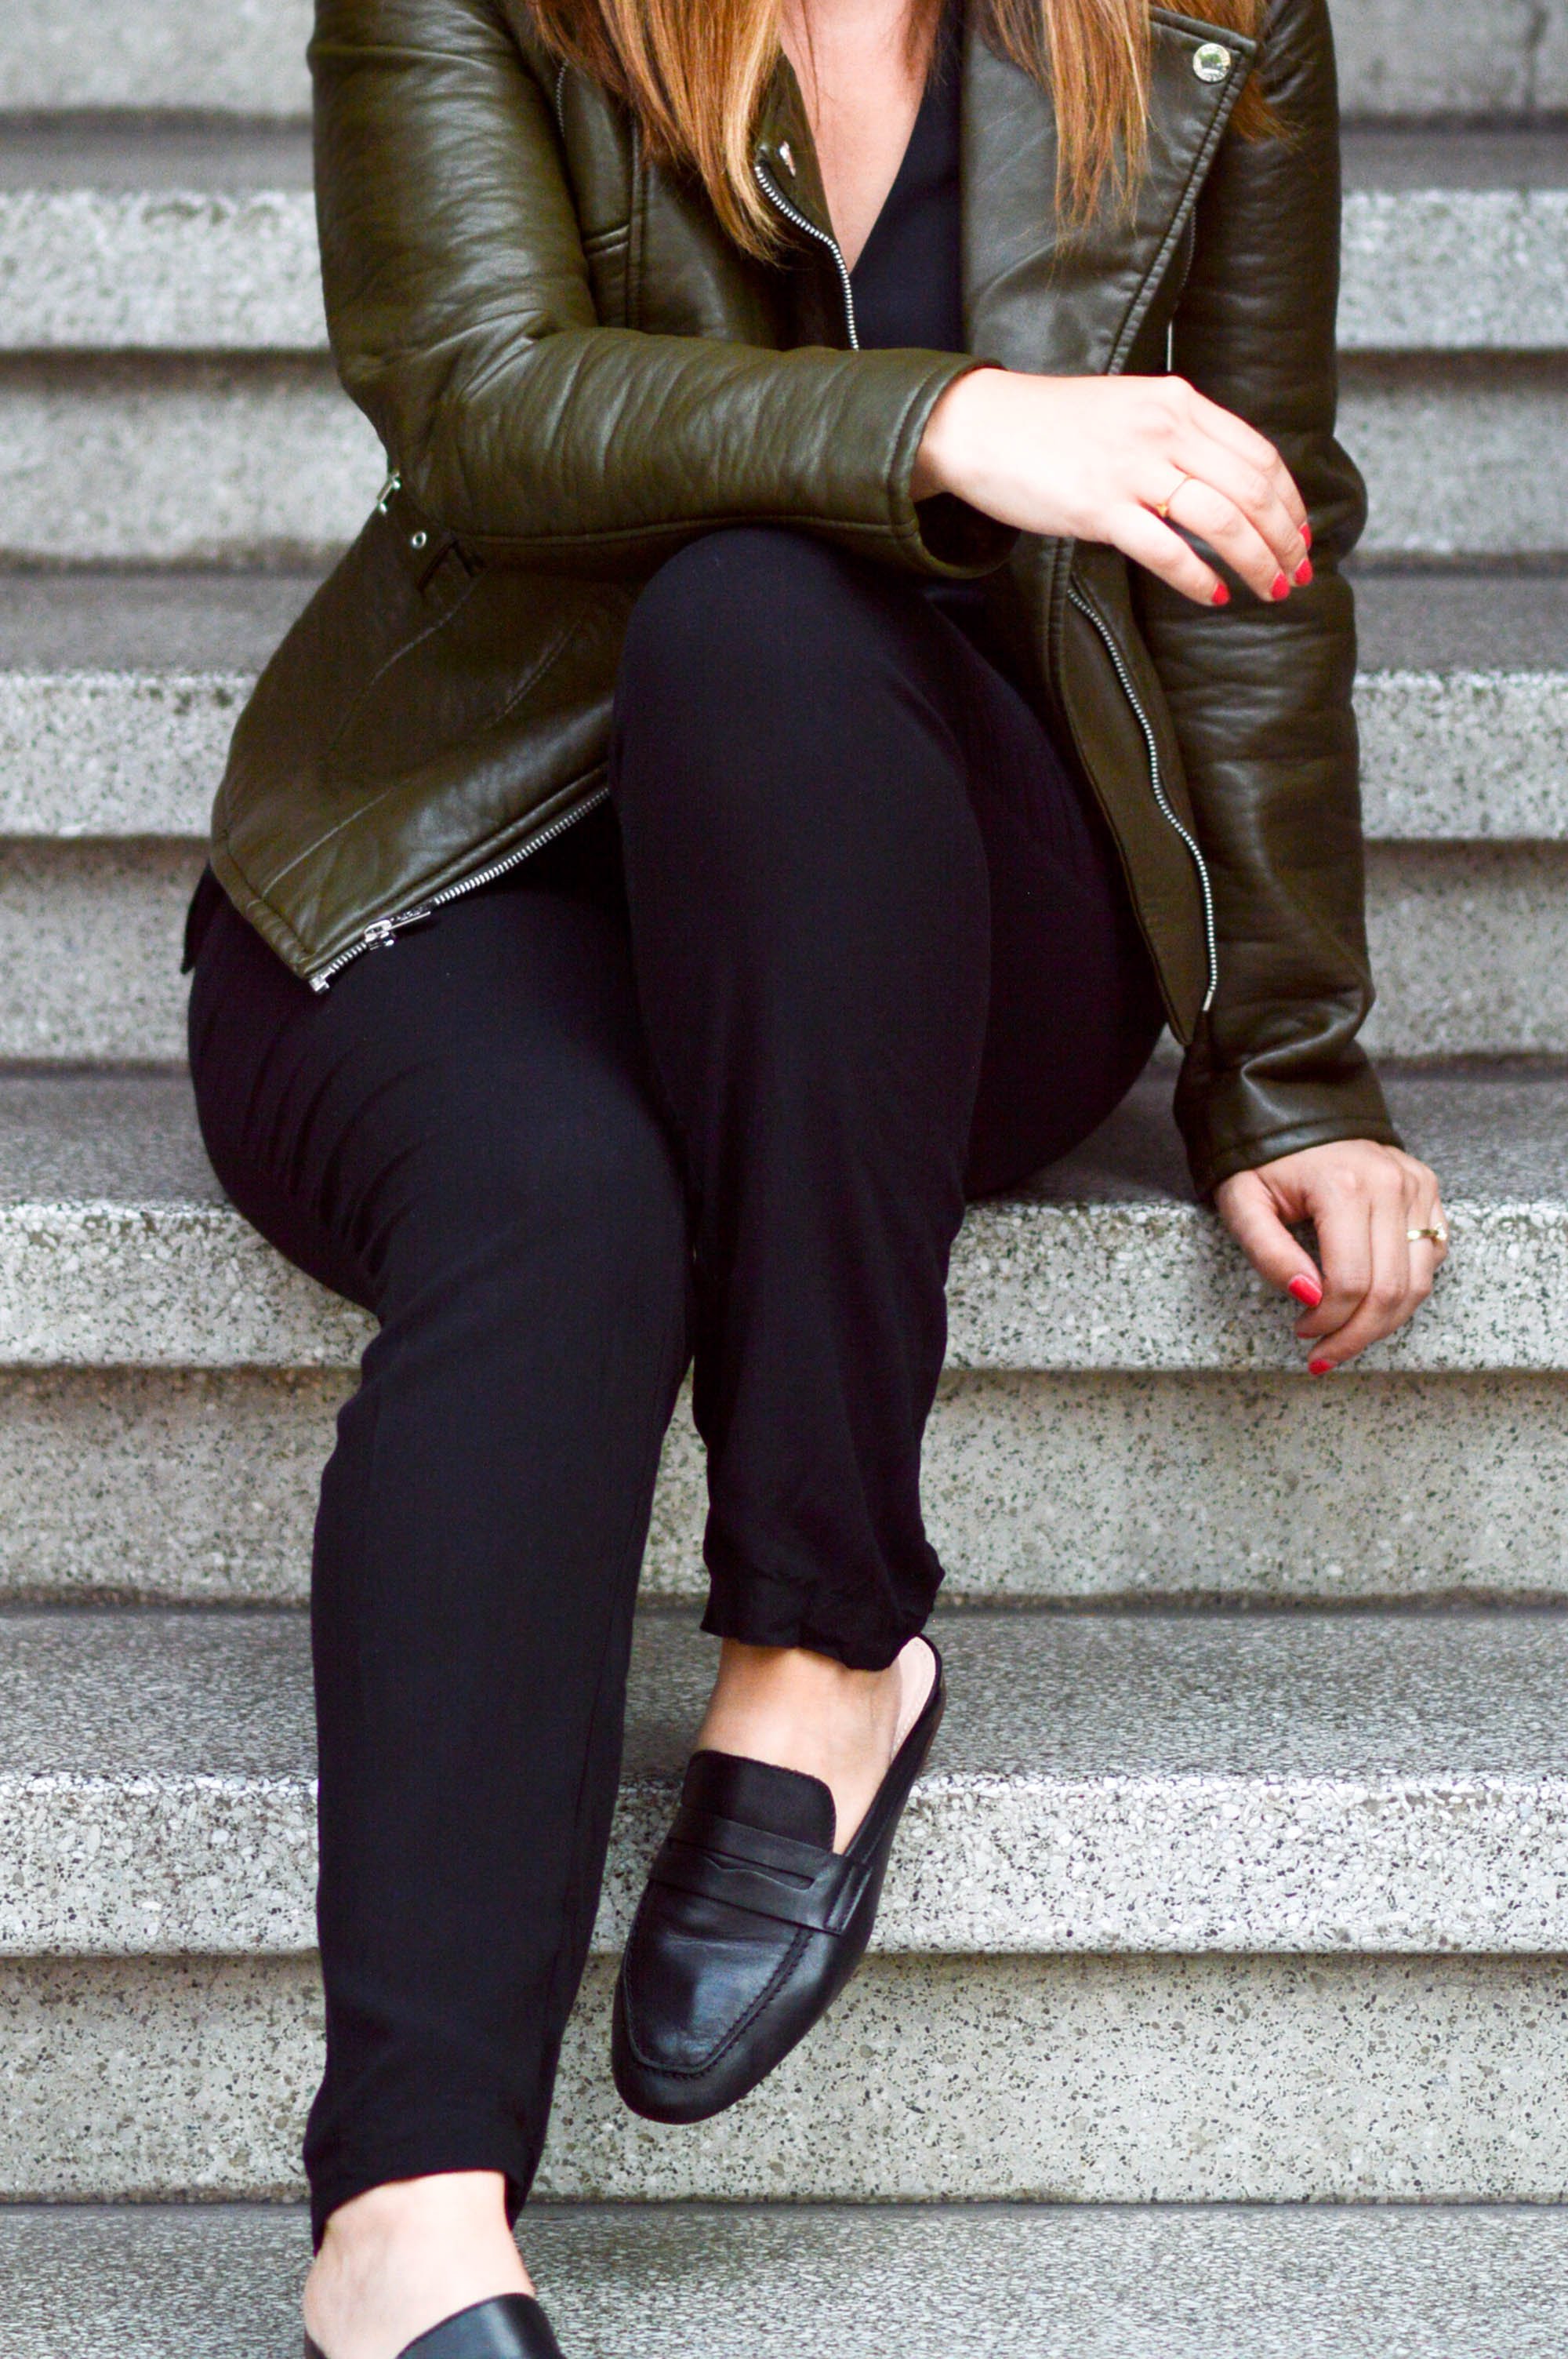 Green With Envy, leather jacket, choker top, oxford mules via. www.birdieshoots.com